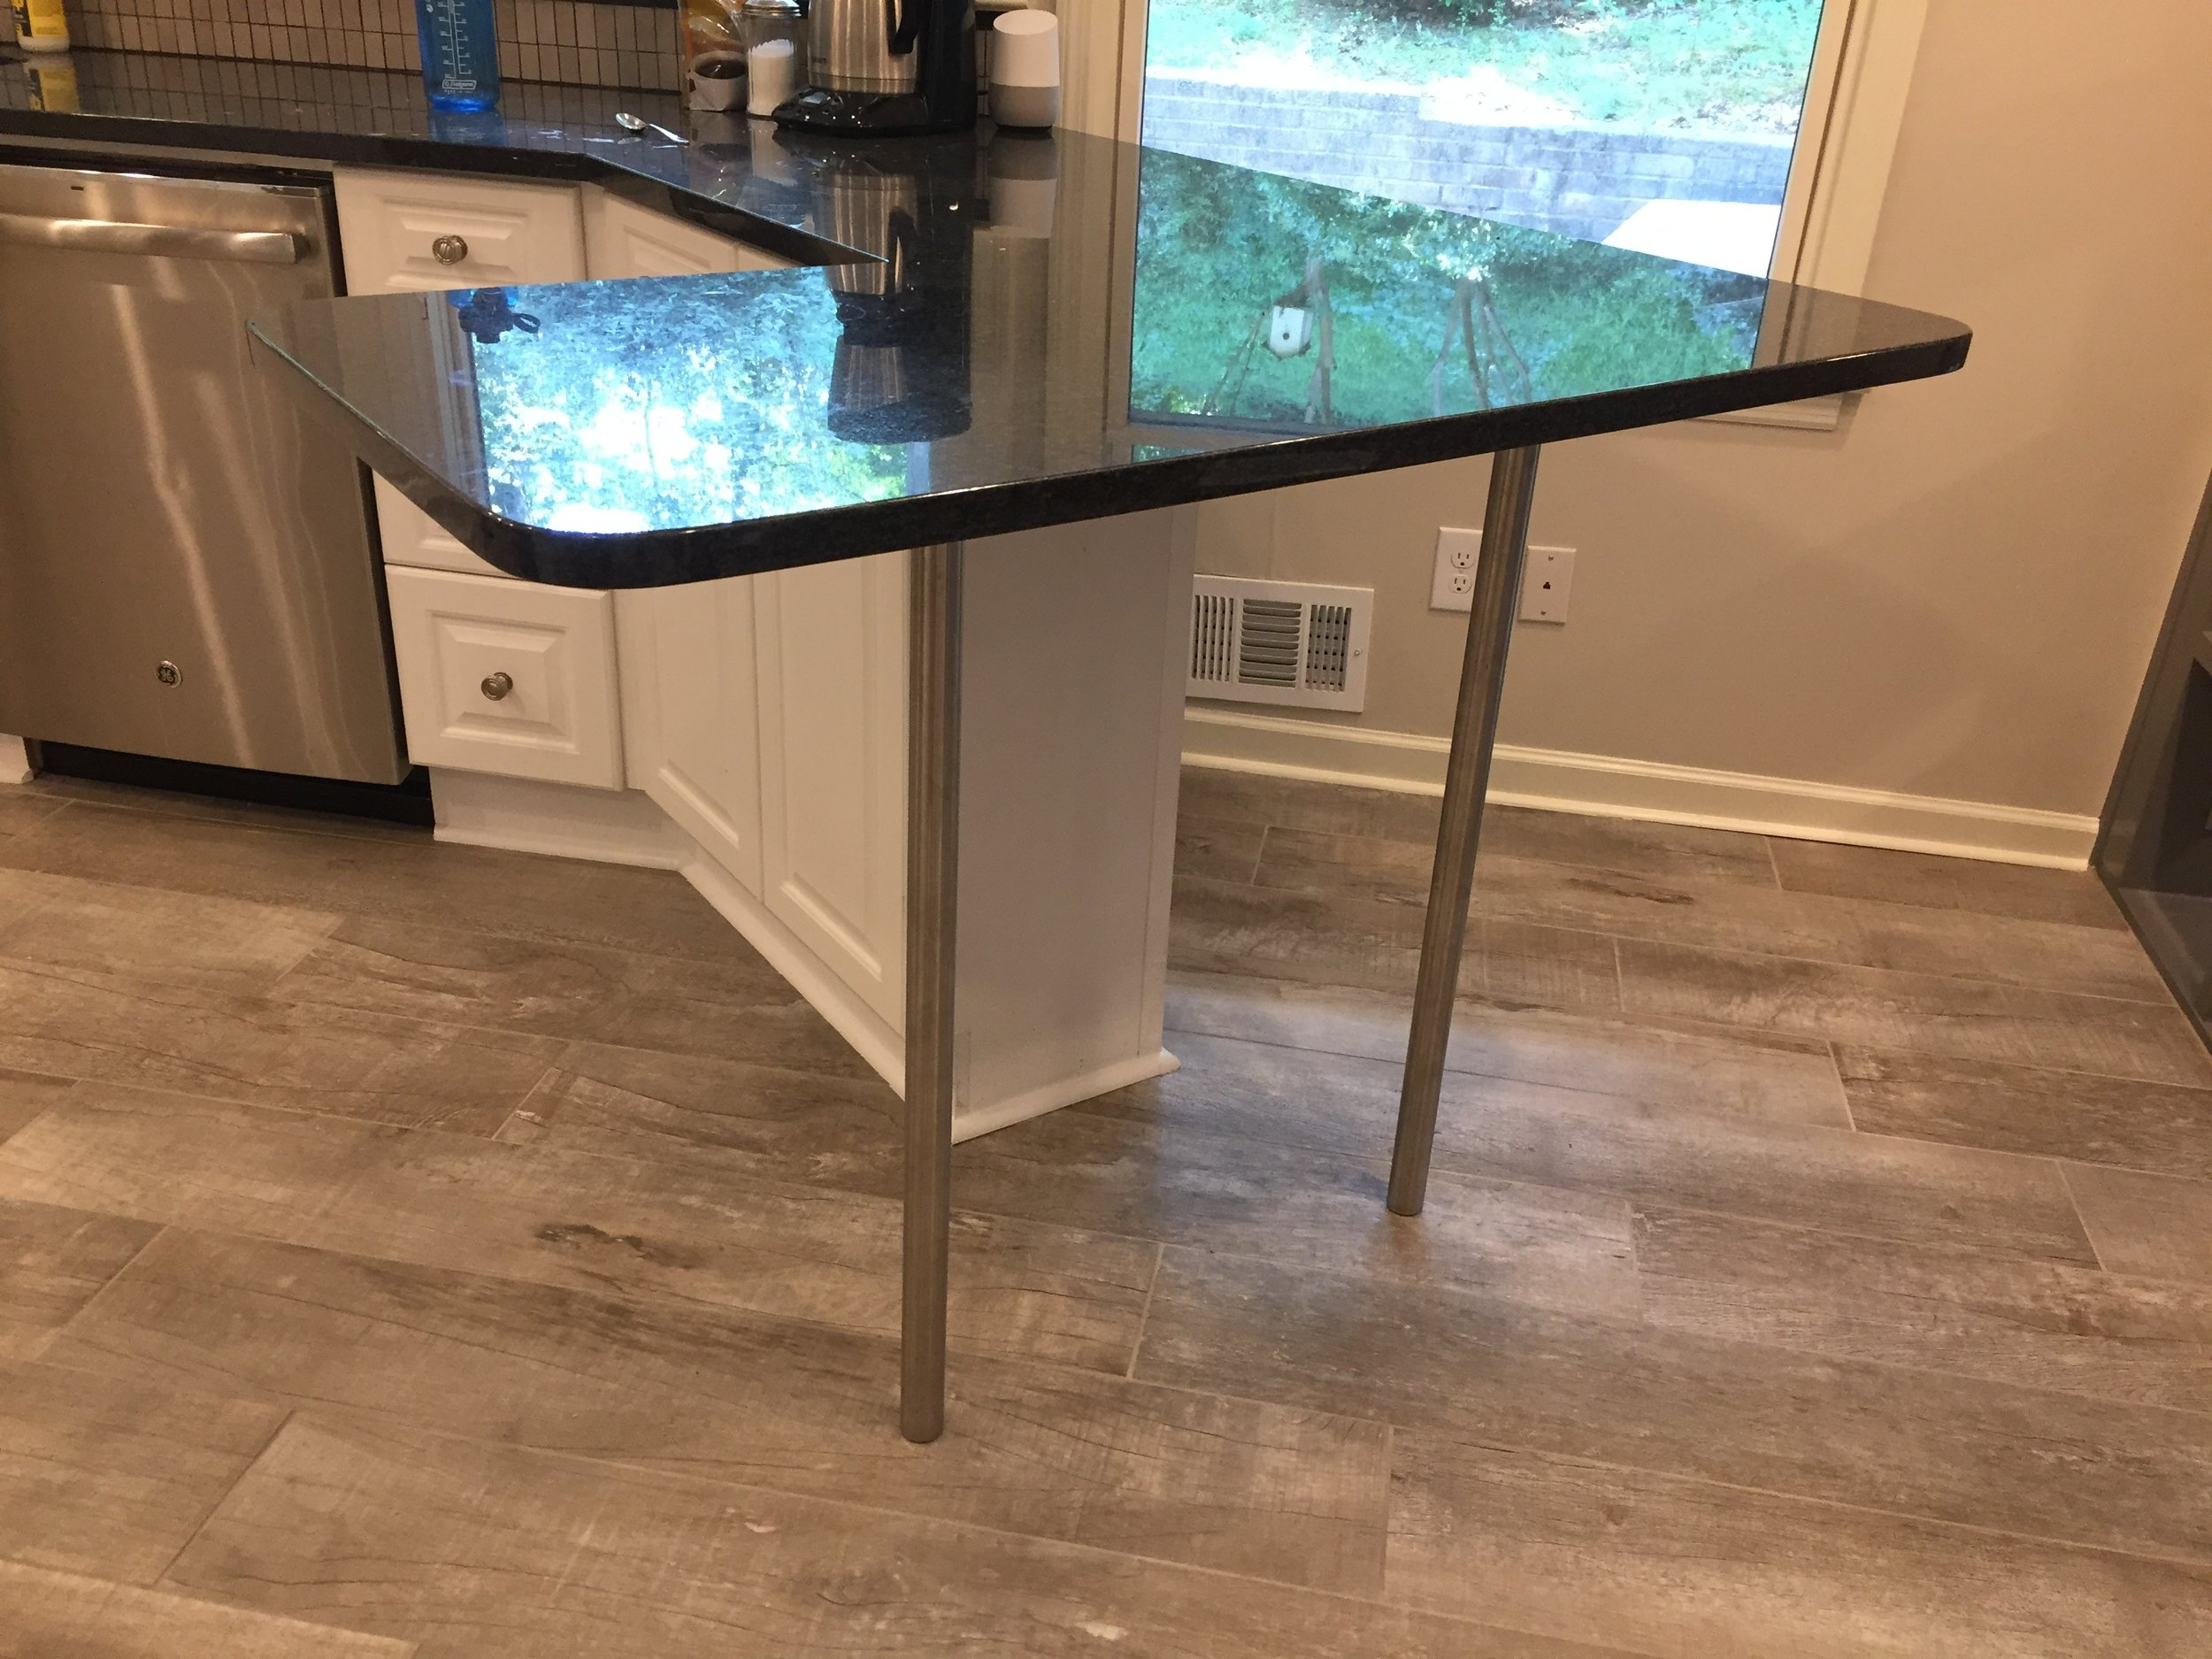 Stainless Steel Countertop Supports